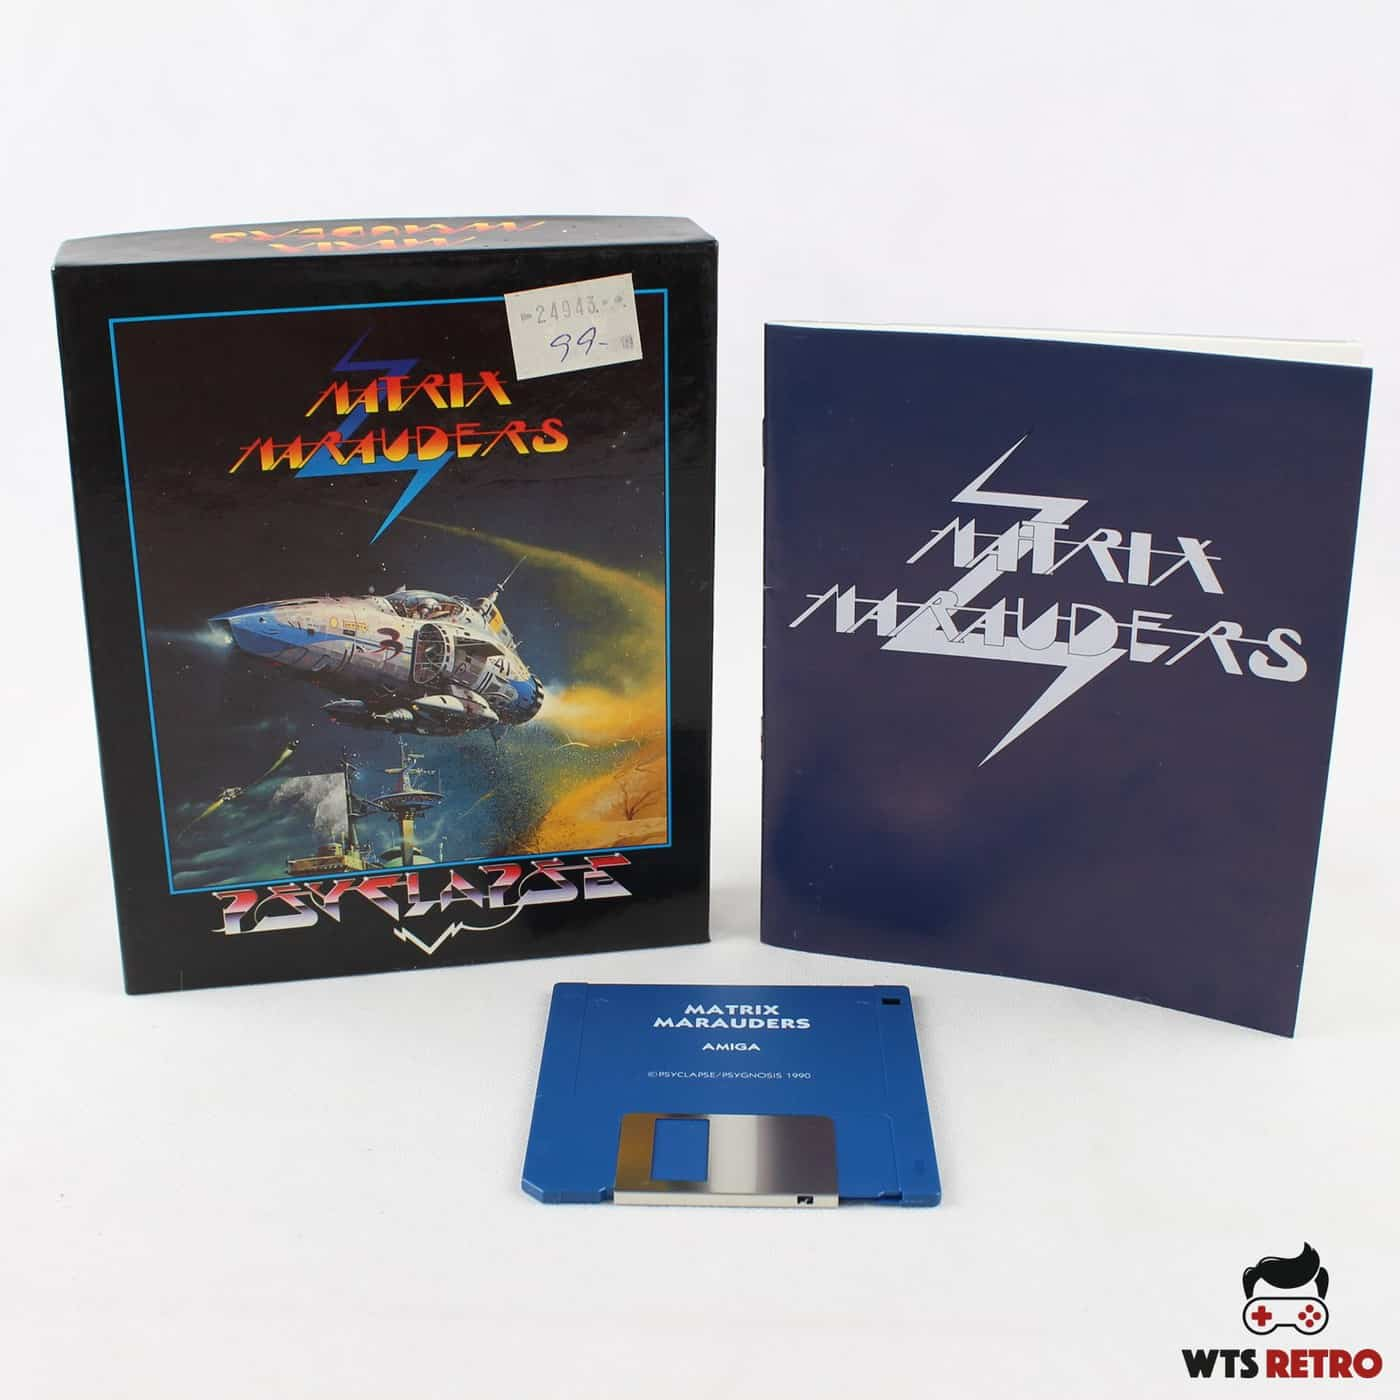 Matrix Marauders (Amiga)